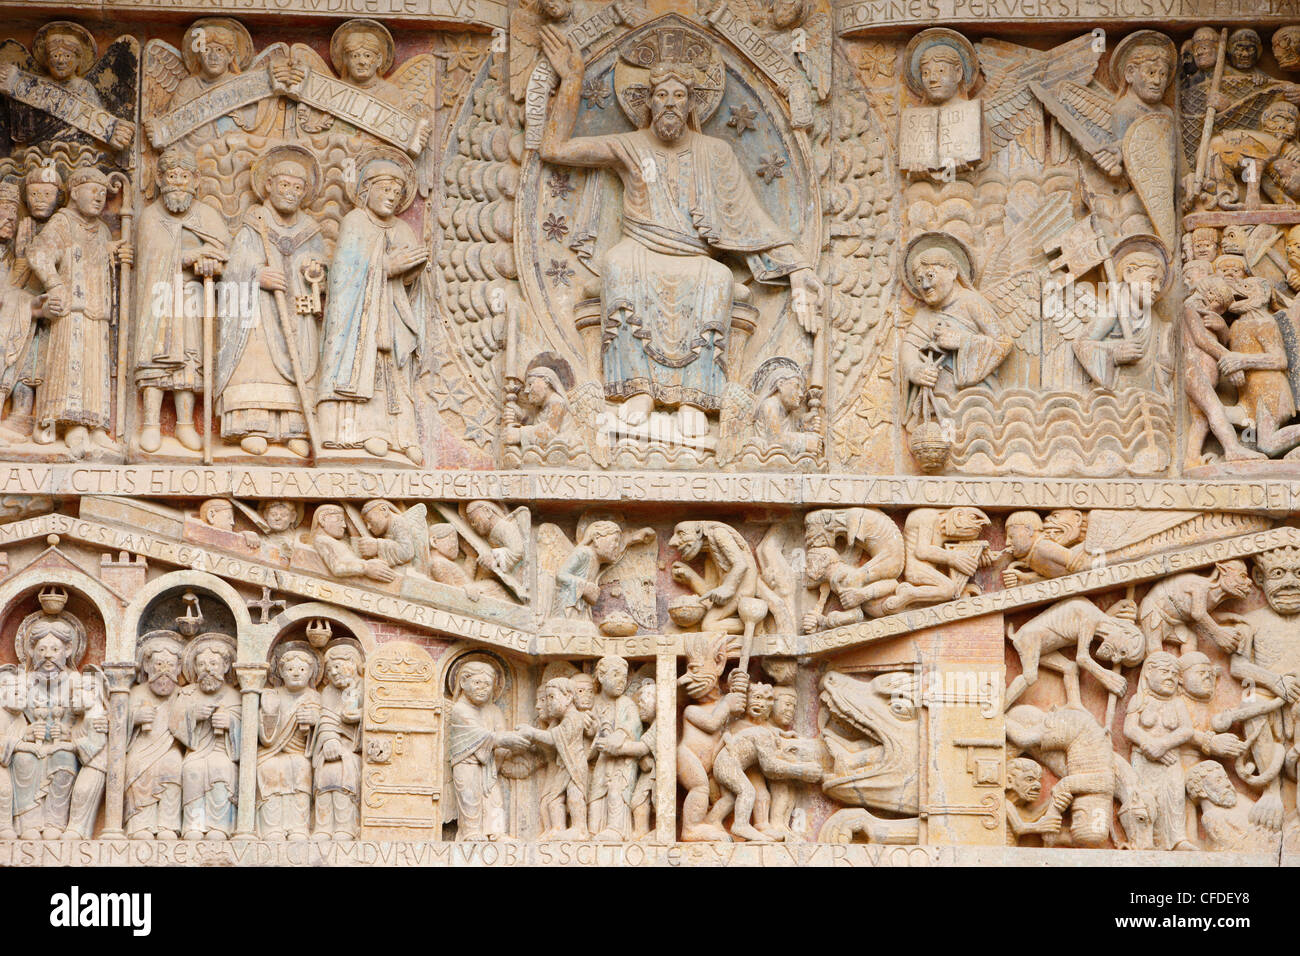 Tympanum showing Christ in Glory and the Last Judgment, Sainte Foy Abbey church, Conques, Aveyron, Massif Central, - Stock Image